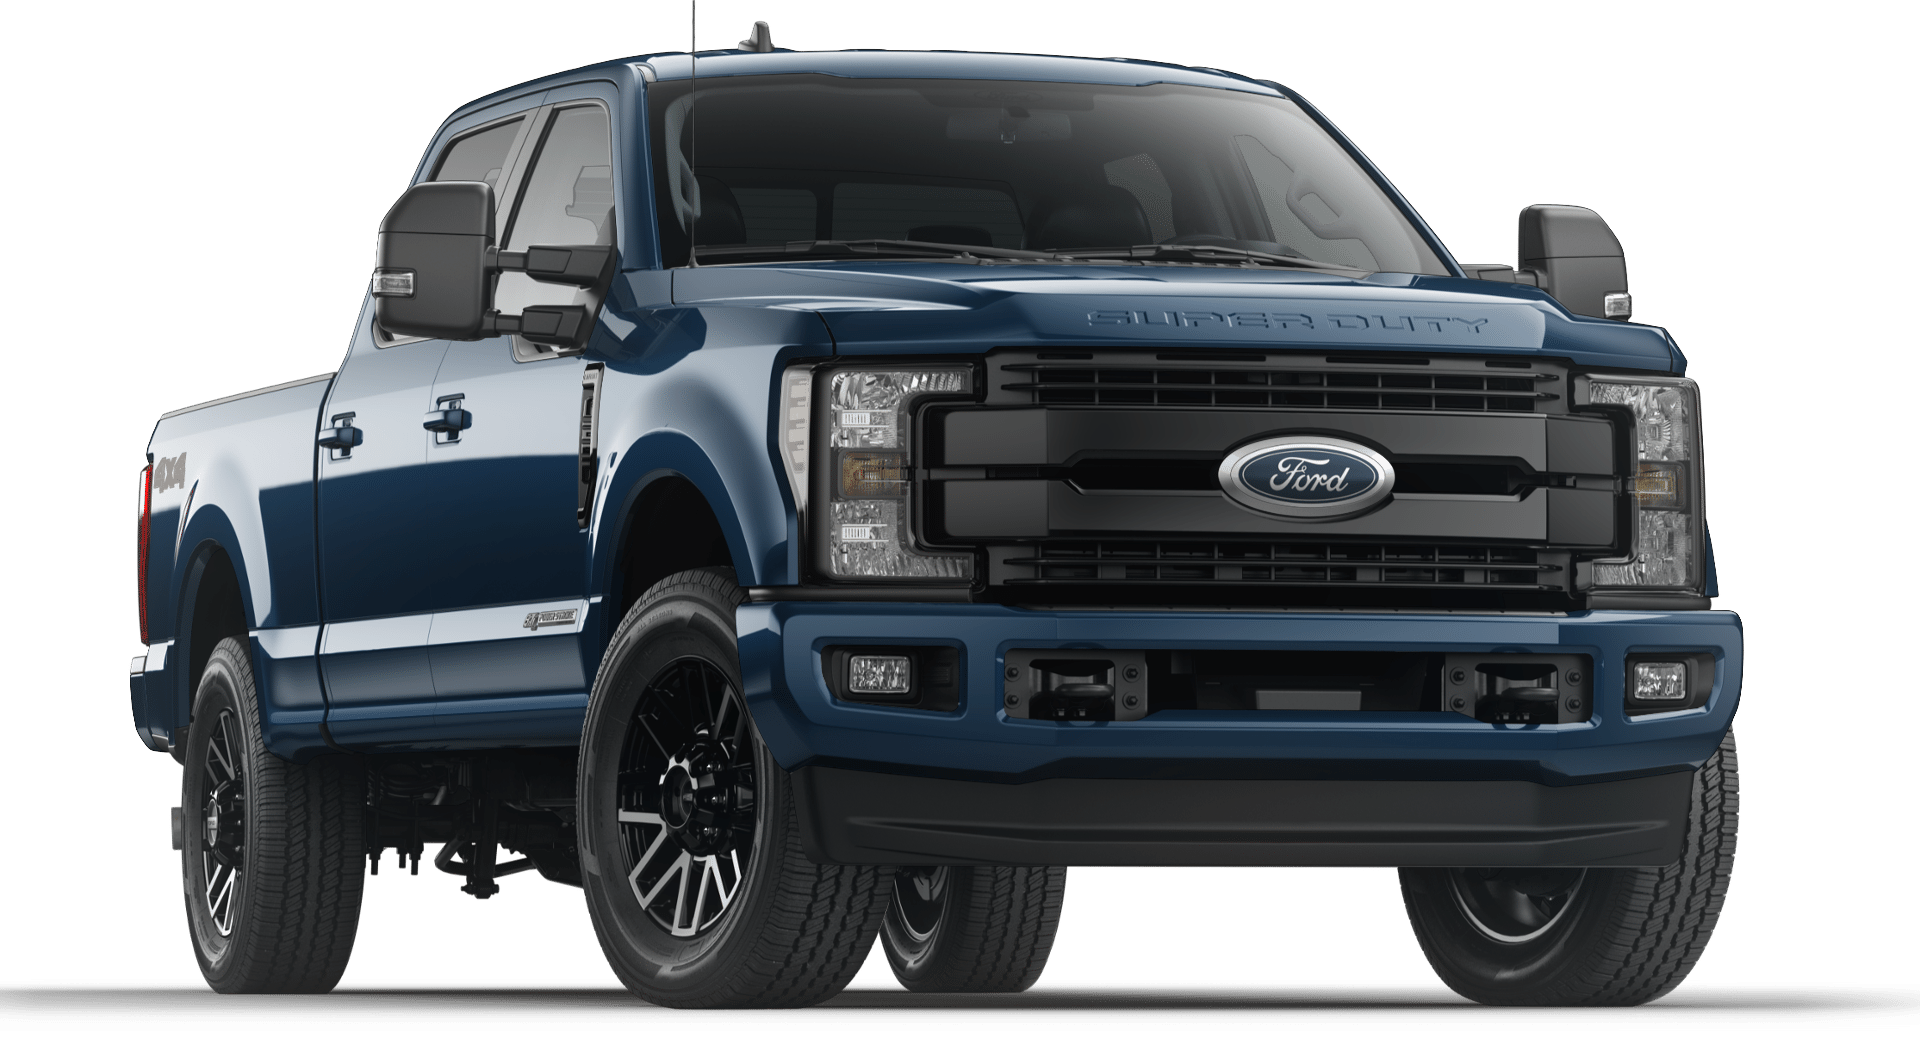 2019 Ford Superduty Build Price Ford Super Duty Ford F350